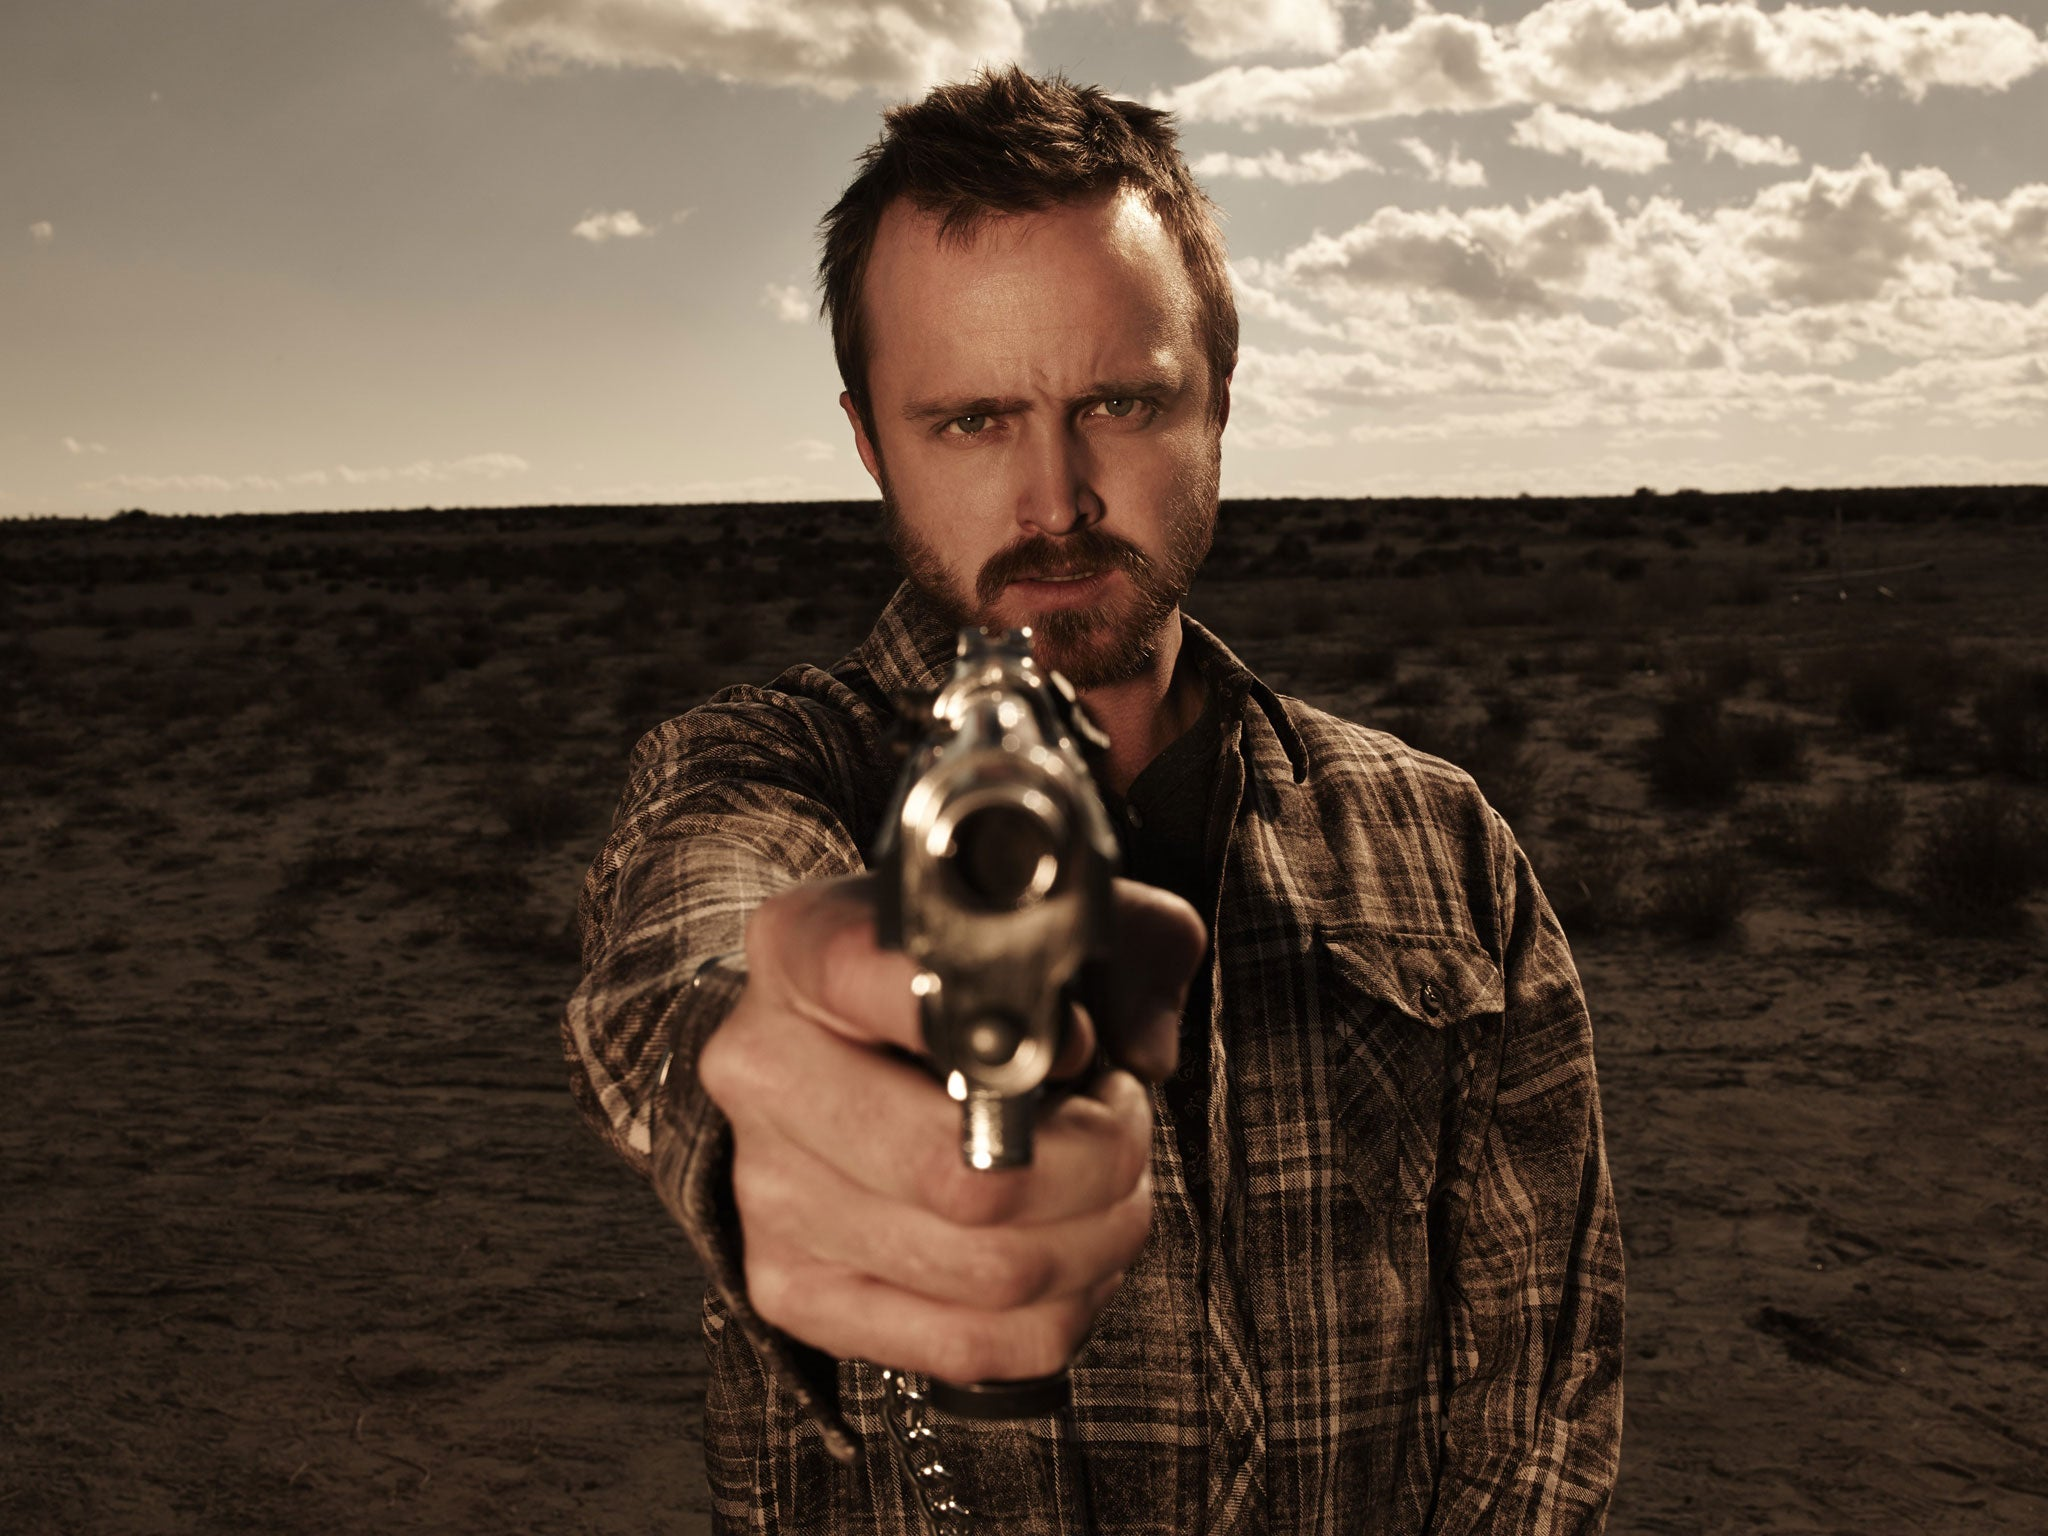 Breaking Bad movie will act as sequel to series and follows Aaron Paul's Jesse Pinkman